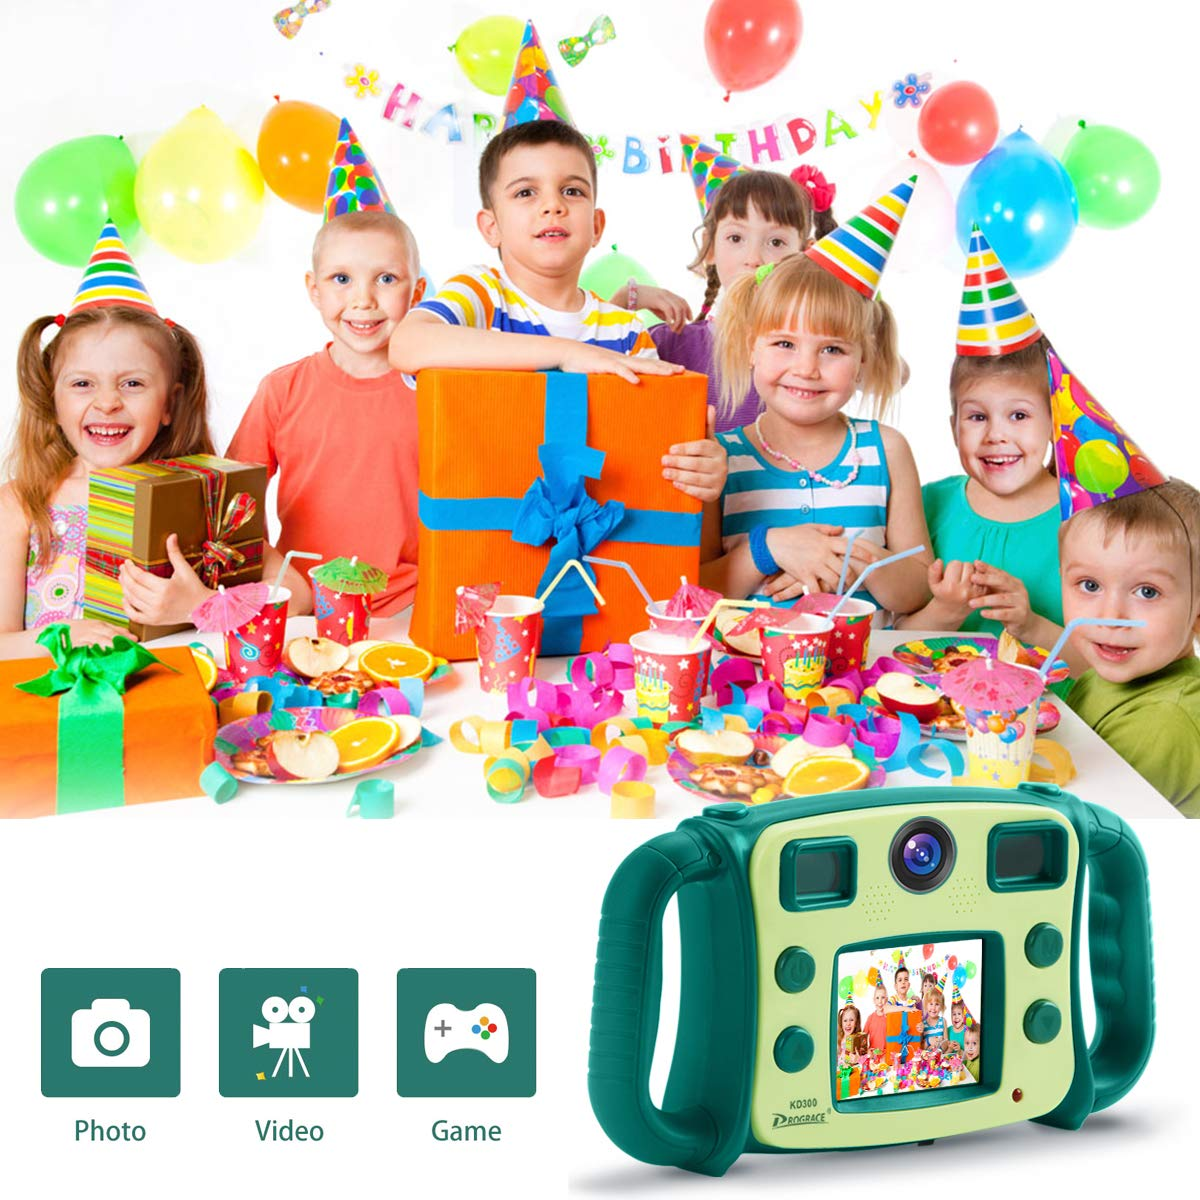 Prograce Kids Camera Dual Selfie Camera 1080P HD Video Recorder Digital Action Camera Camcorder for Boys Girls Gifts 2.0'' LCD Screen with 4X Digital Zoom and Funny Game(Green) by Prograce (Image #6)